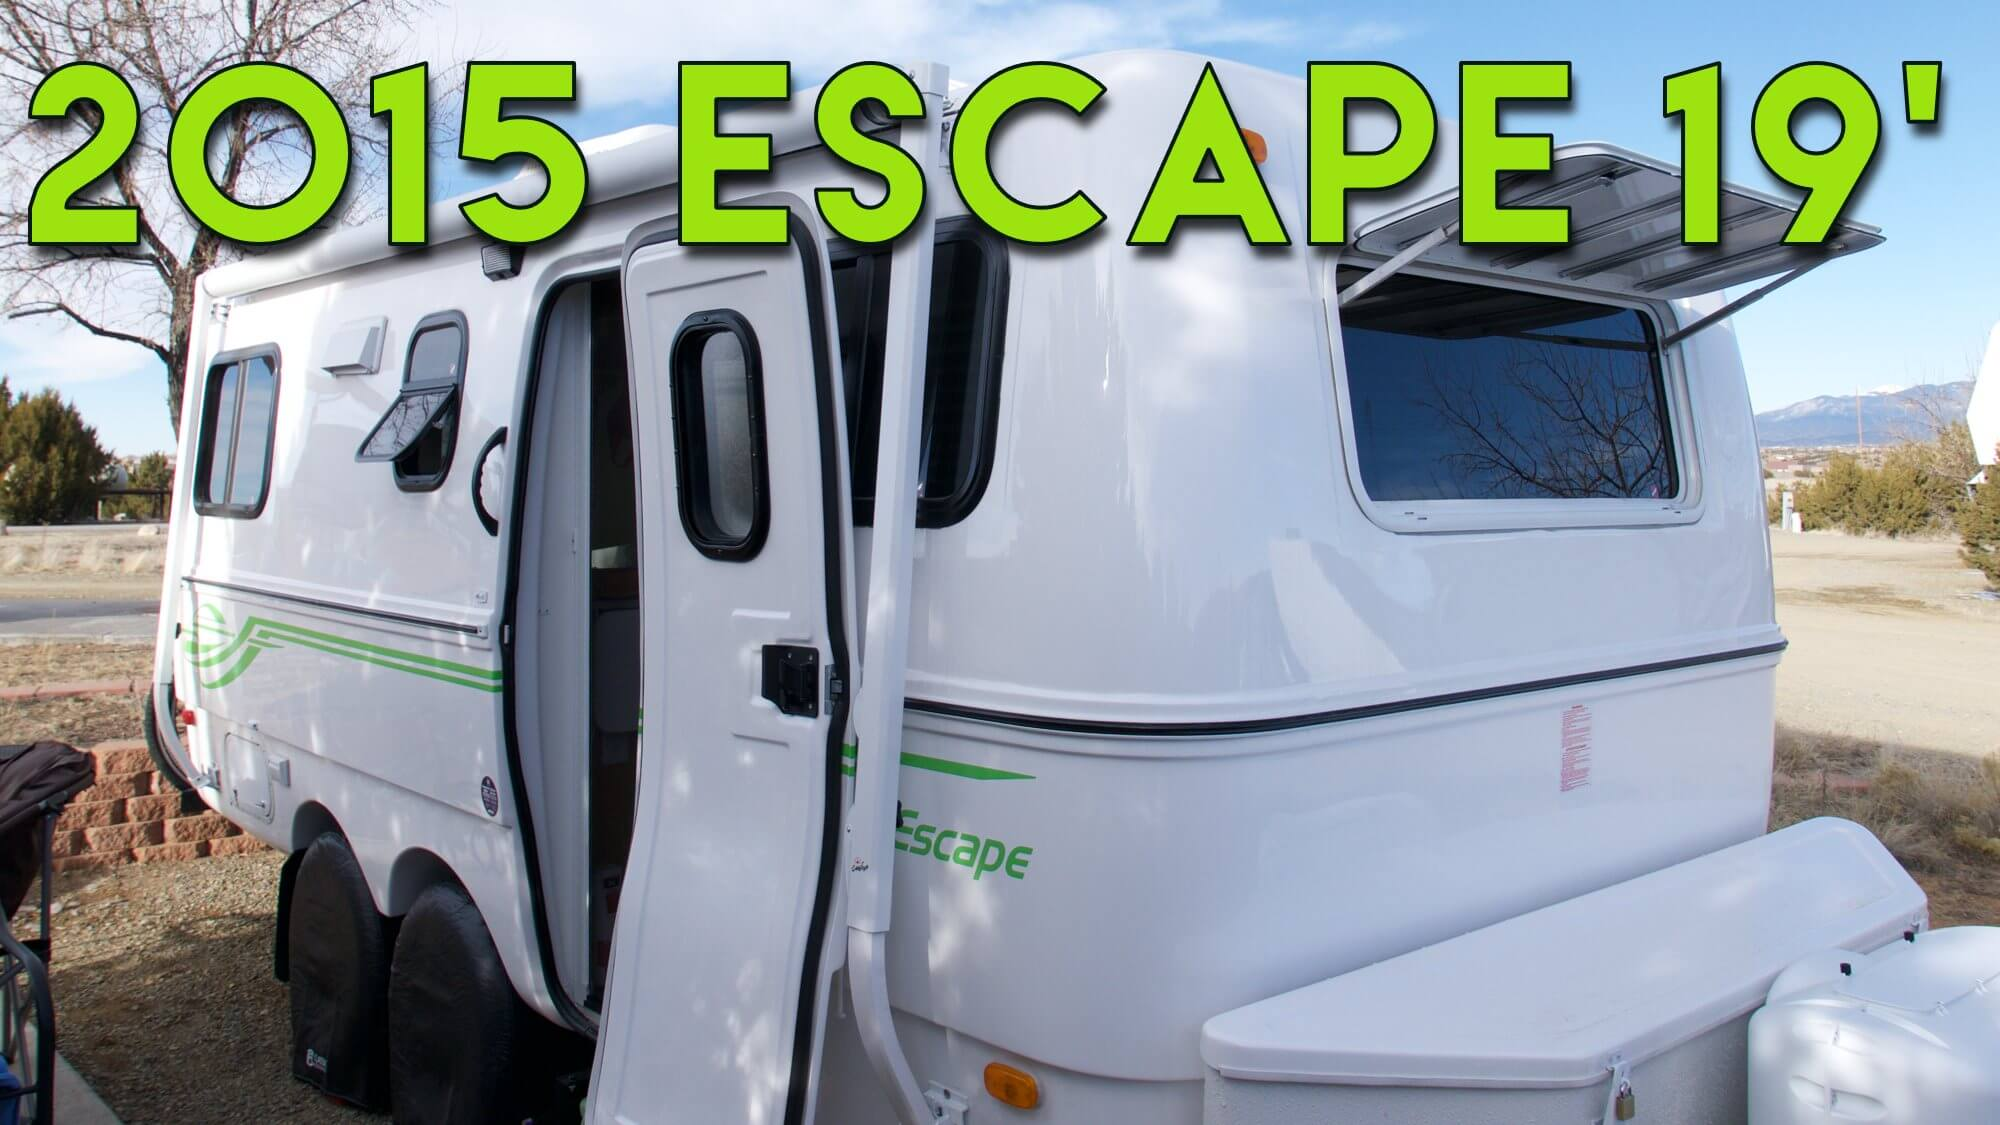 2015 Escape 19 Tour - Full Time RV Travel Trailer